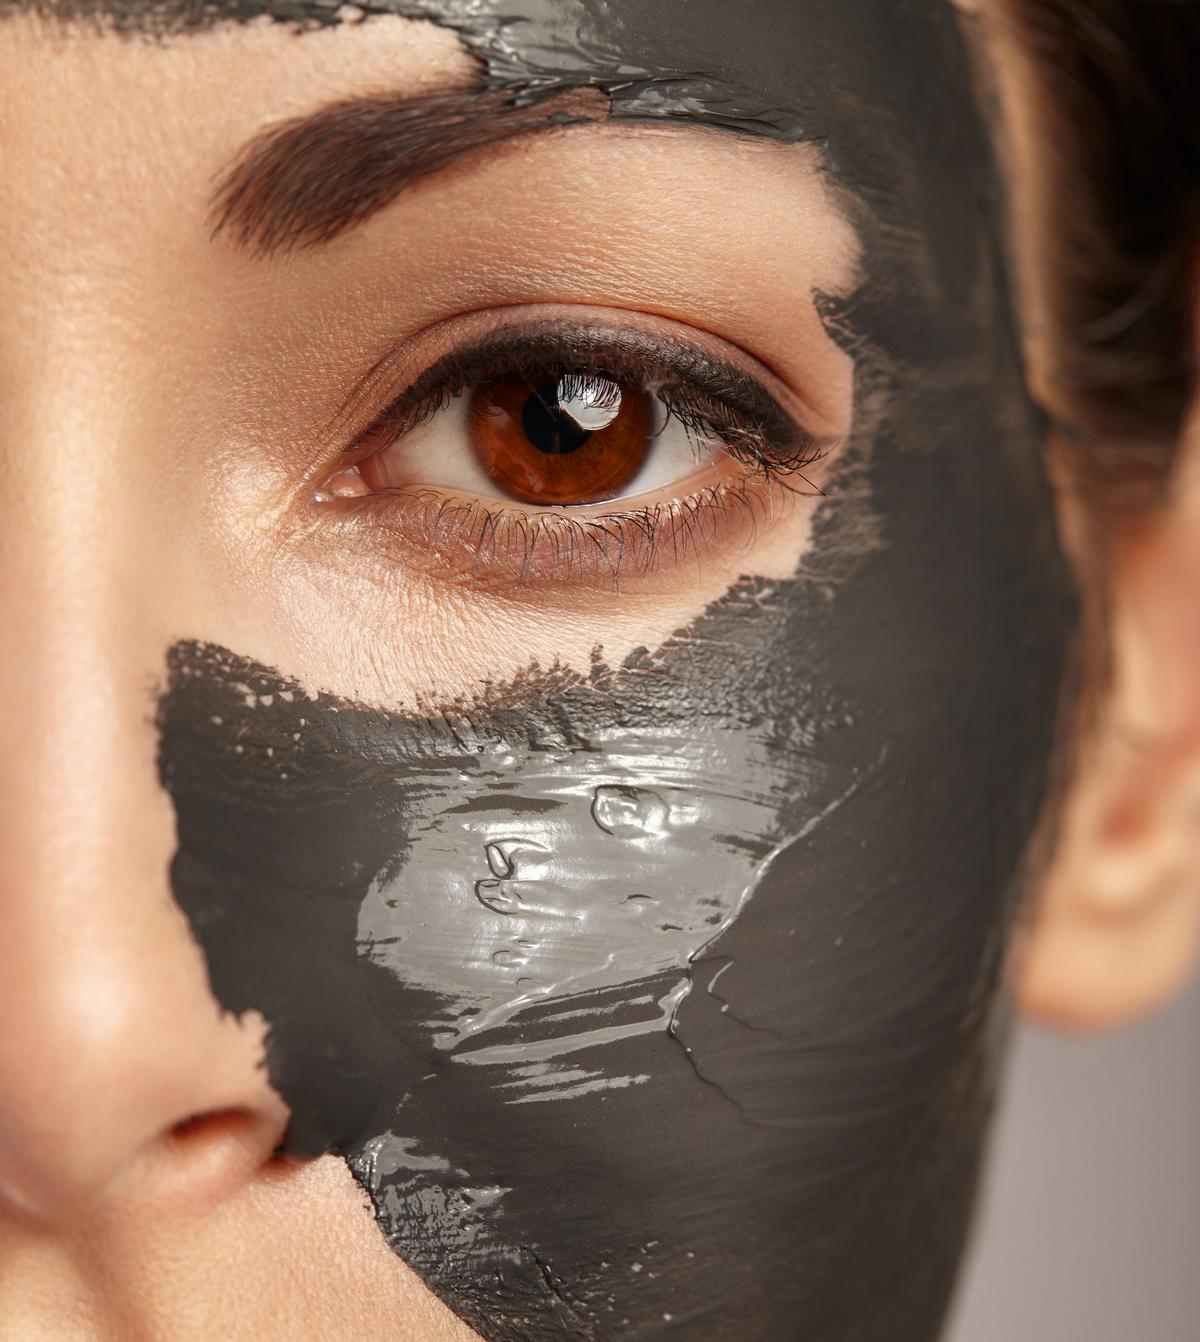 Increase in the demand for anti-ageing products will help to drive the growth of the global professional skincare market, according to the report / Shutterstock / 257498275